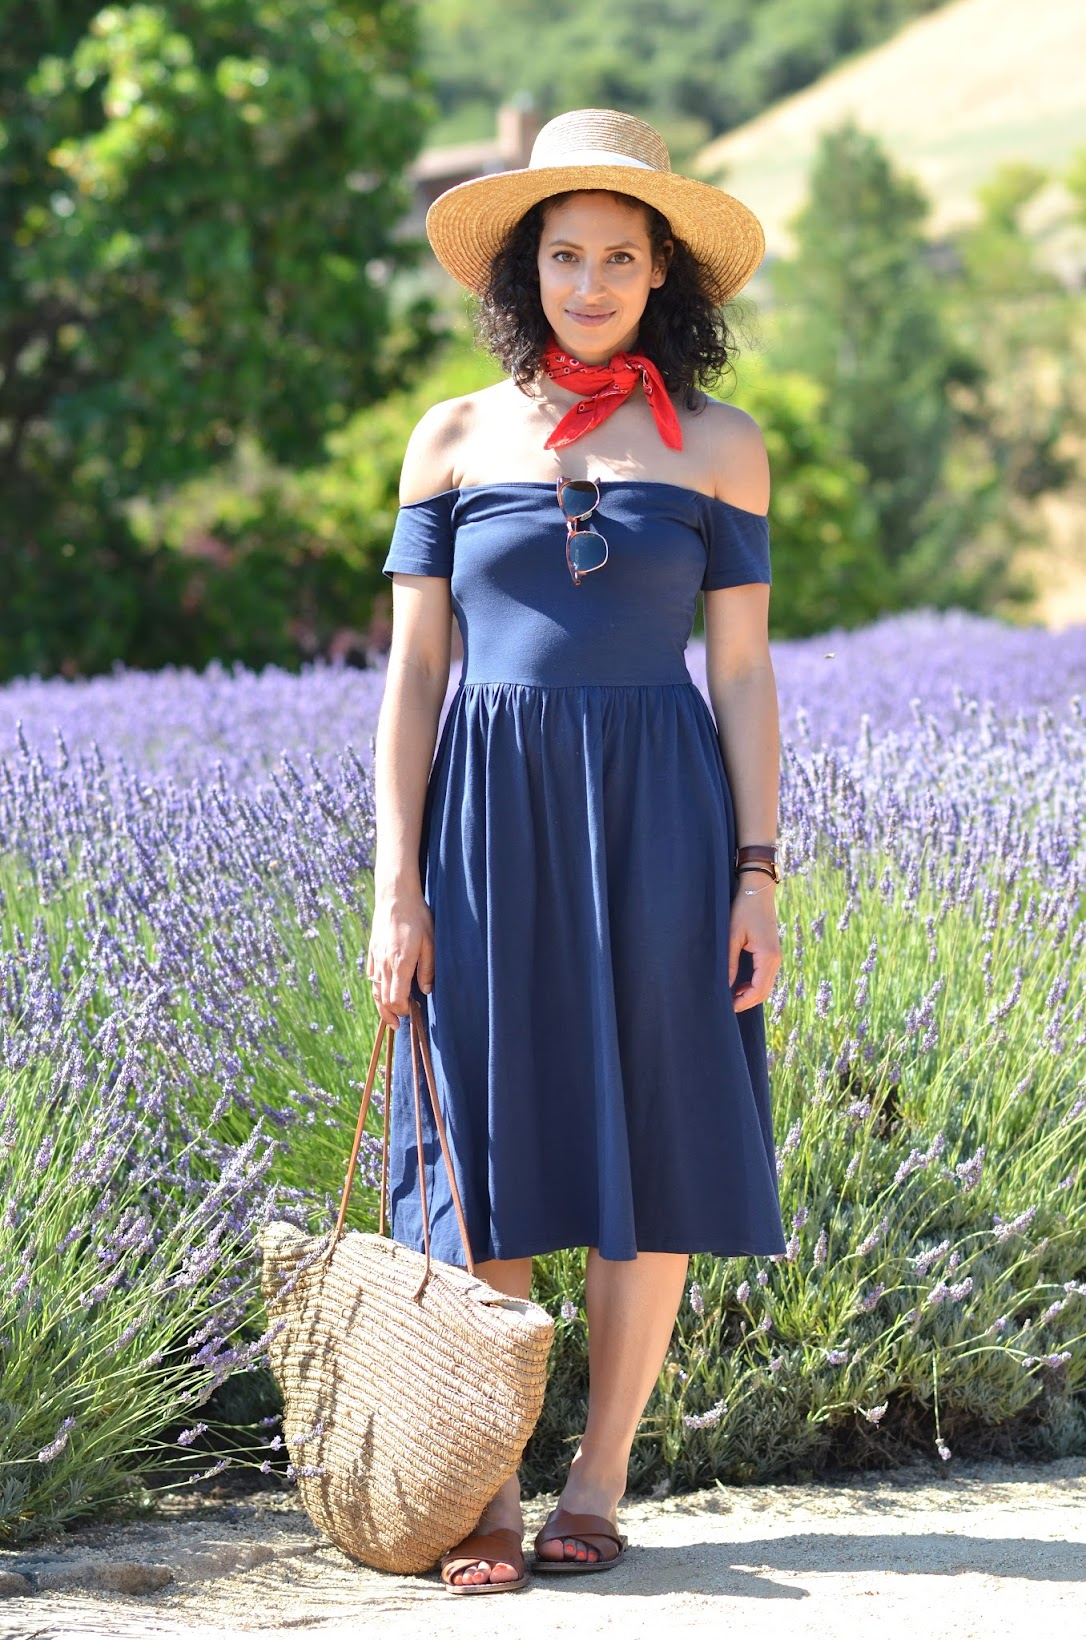 Matanzas Creek Winery, Lavender fields, Wine country, off the shoulder blue dress, Asos, straw fedora, summer style, straw summer accents